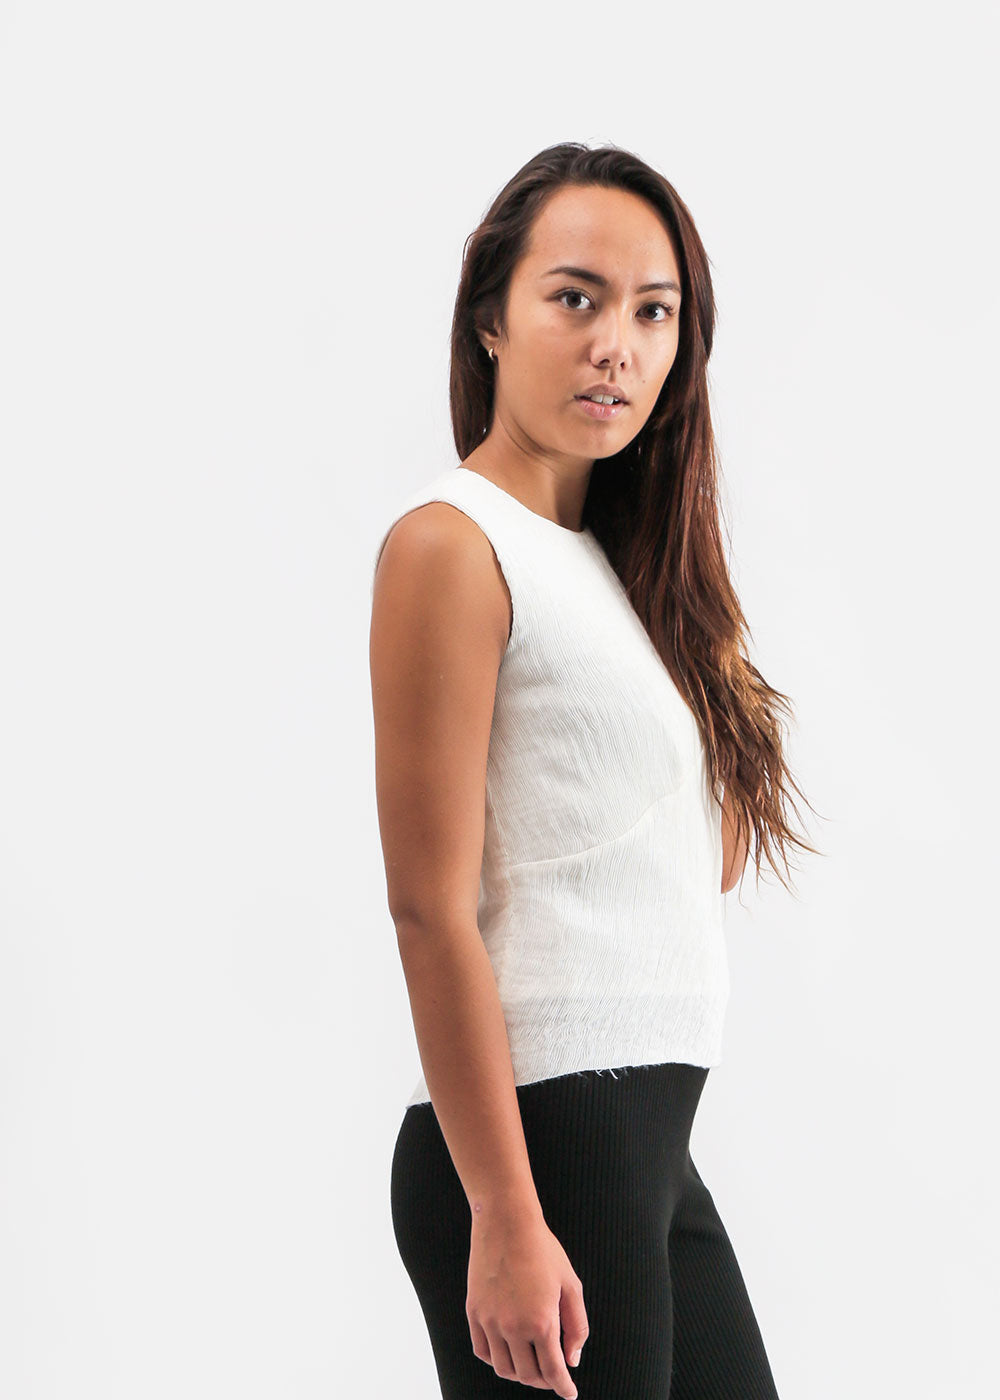 Ajaie Alaie Cloud Siempre Lunes Top — Shop sustainable fashion and slow fashion at New Classics Studios